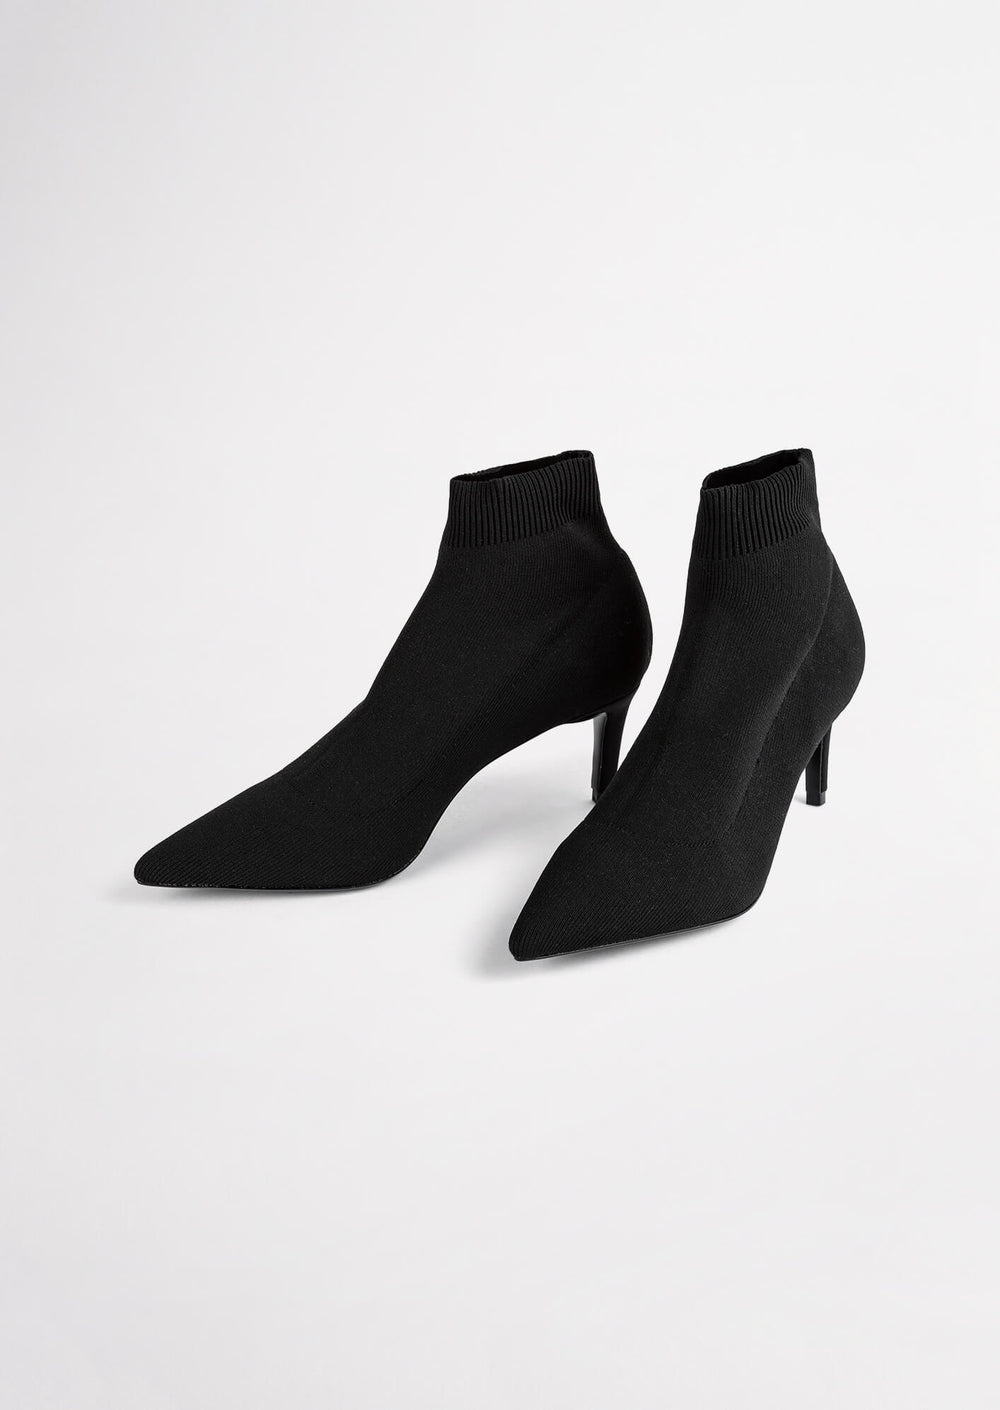 Gwen Black Sock Knit Ankle Boots